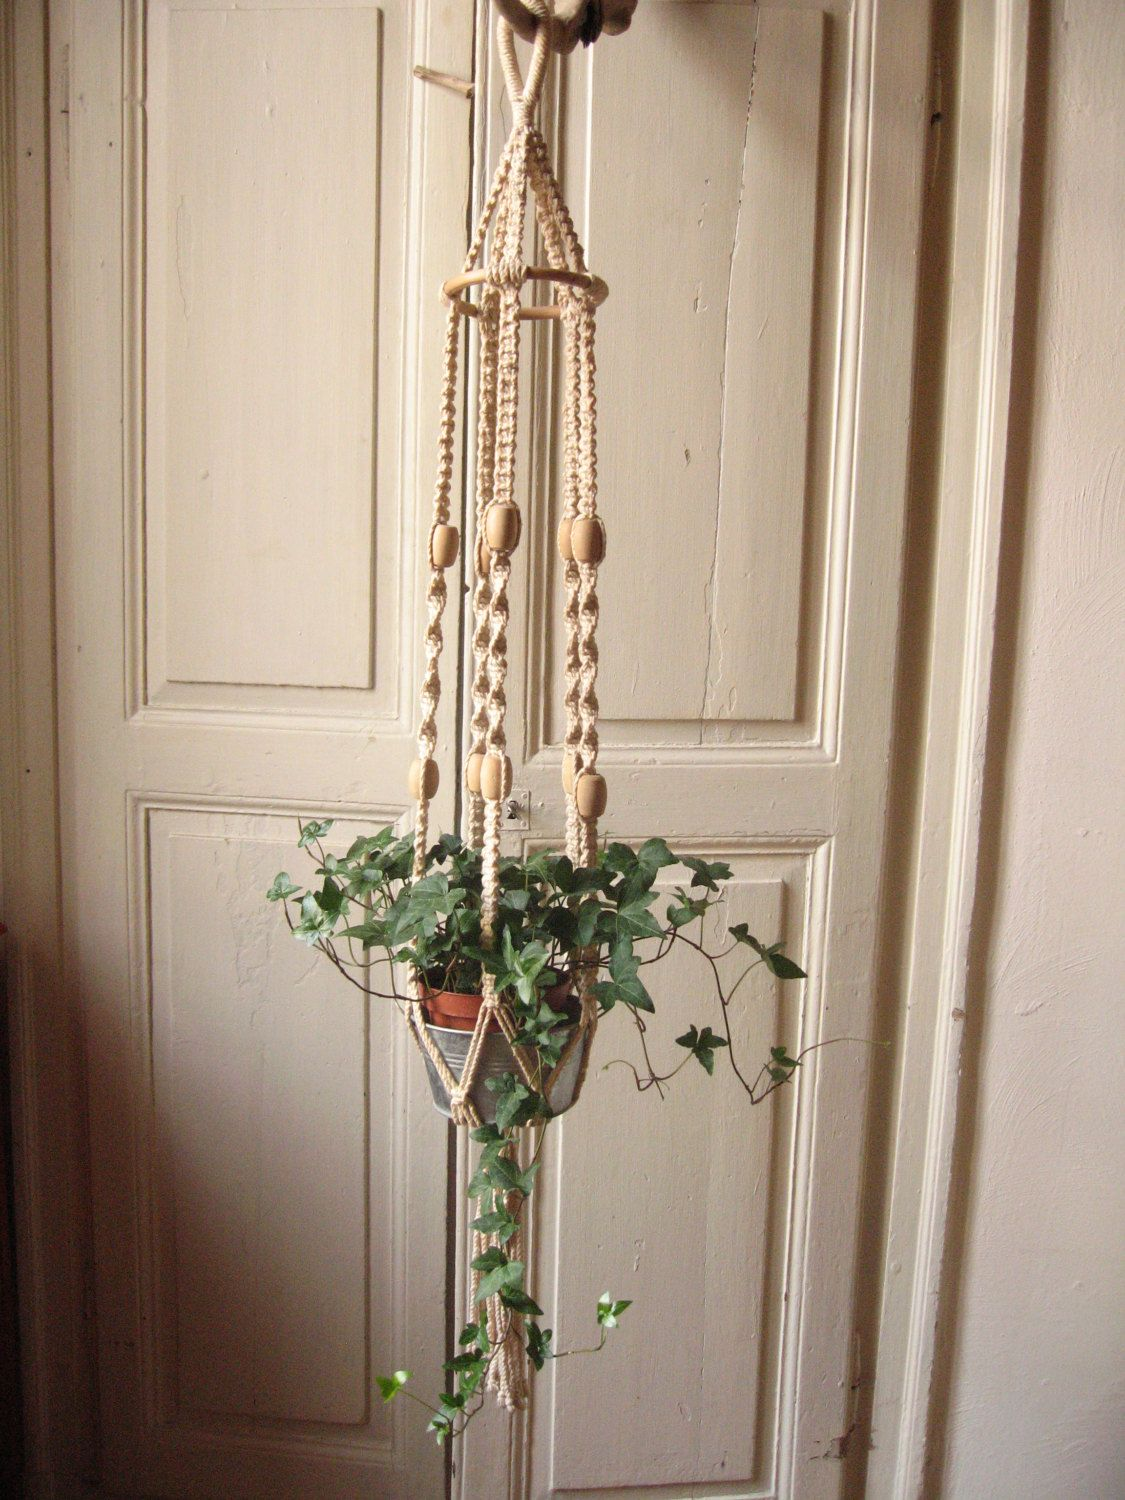 suspension in macrame crochet plant vintage braided cotton and beads wood door pot to. Black Bedroom Furniture Sets. Home Design Ideas